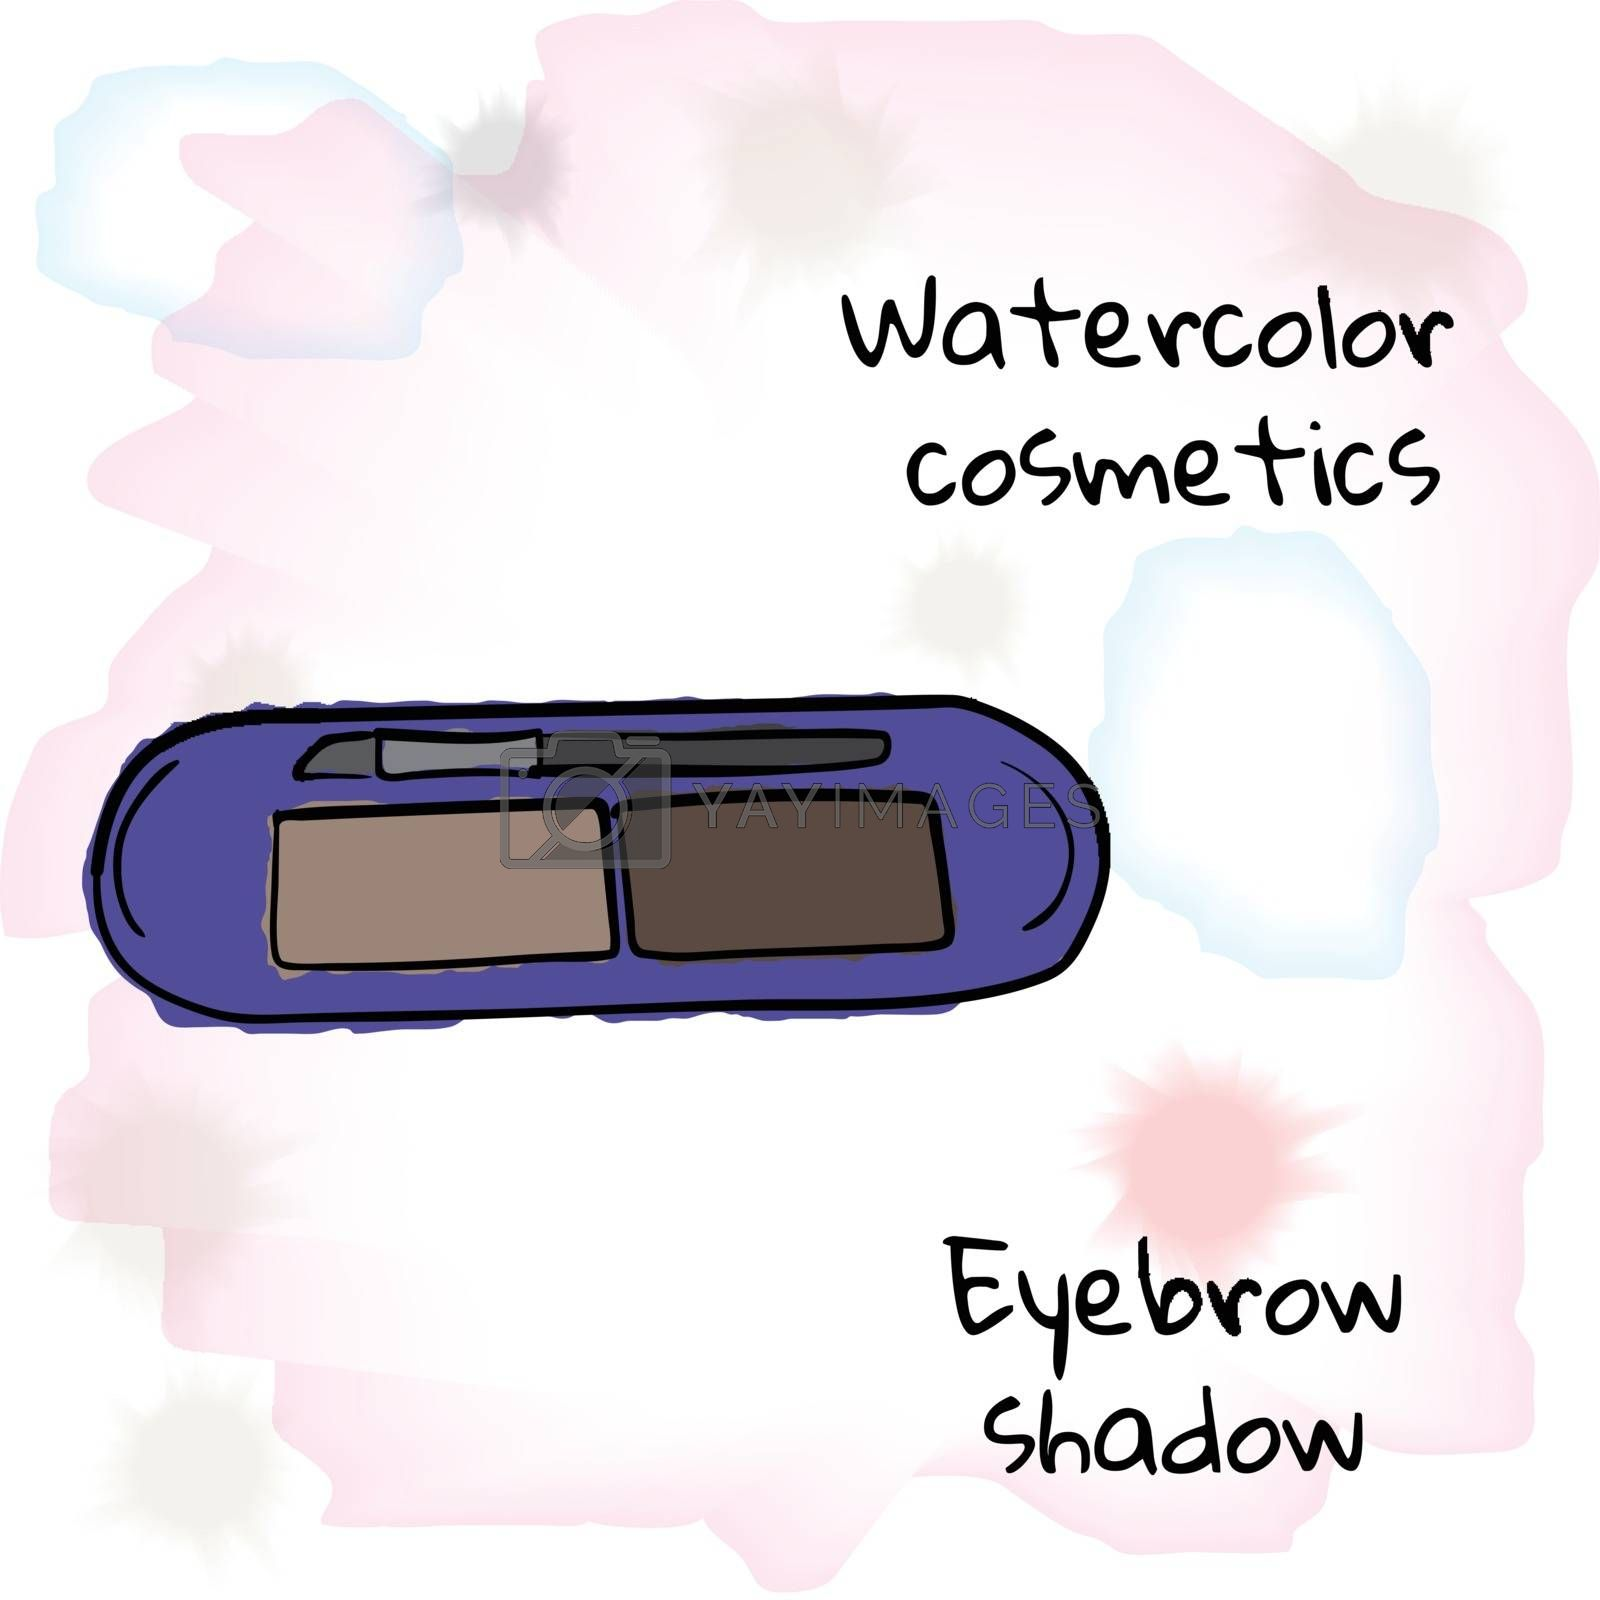 Royalty free image of Watercolor cosmetics. Watercolor eyebrow shadow on a blurred background by CrisPersonally